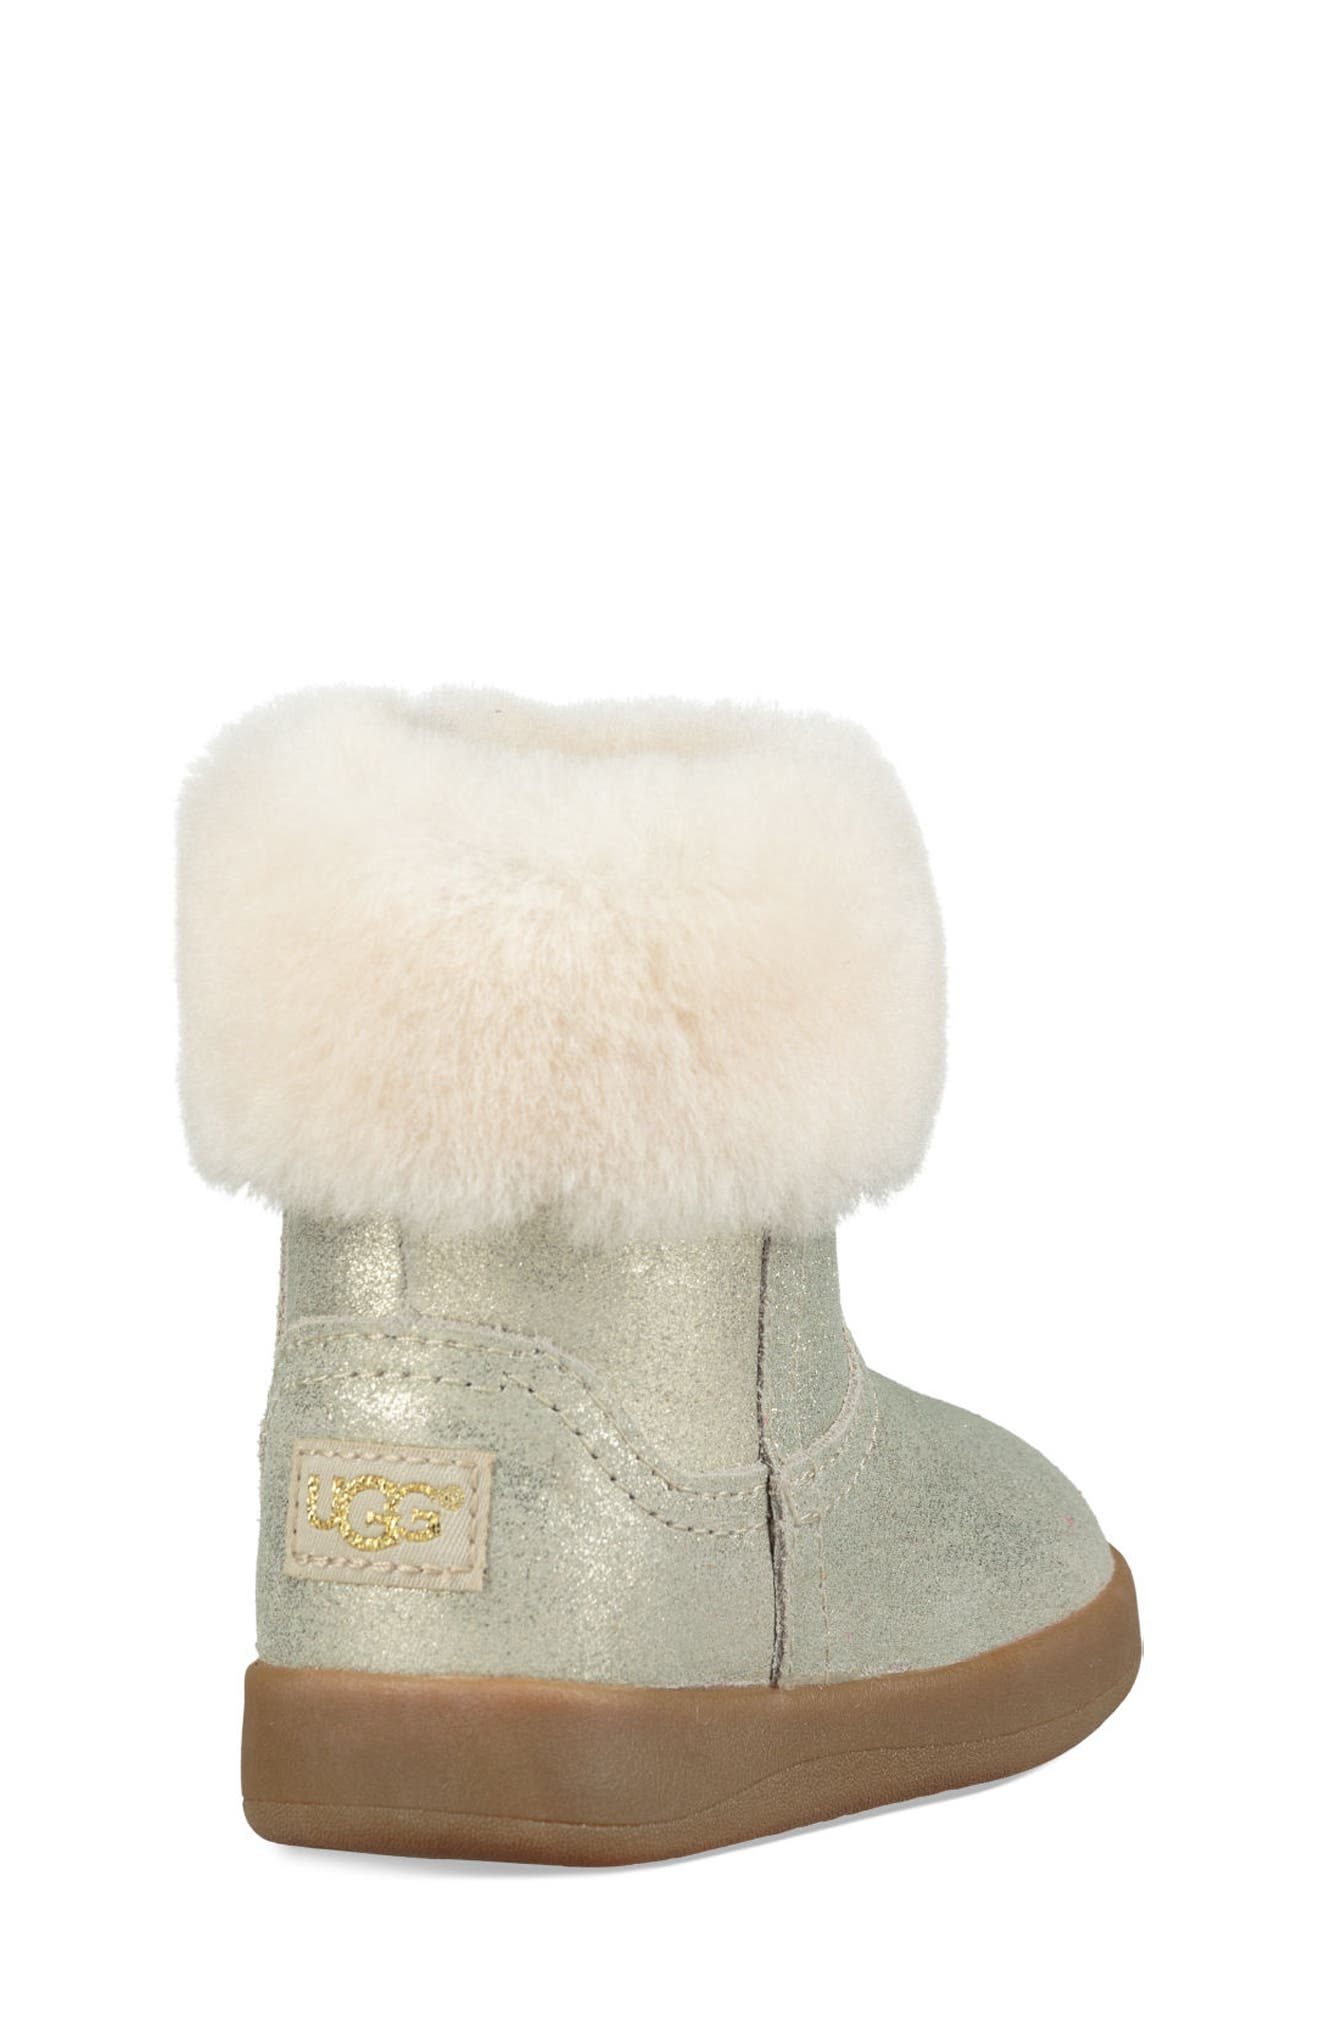 UGG<SUP>®</SUP>, Jorie II Metallic Genuine Shearling Boot, Alternate thumbnail 2, color, GOLD